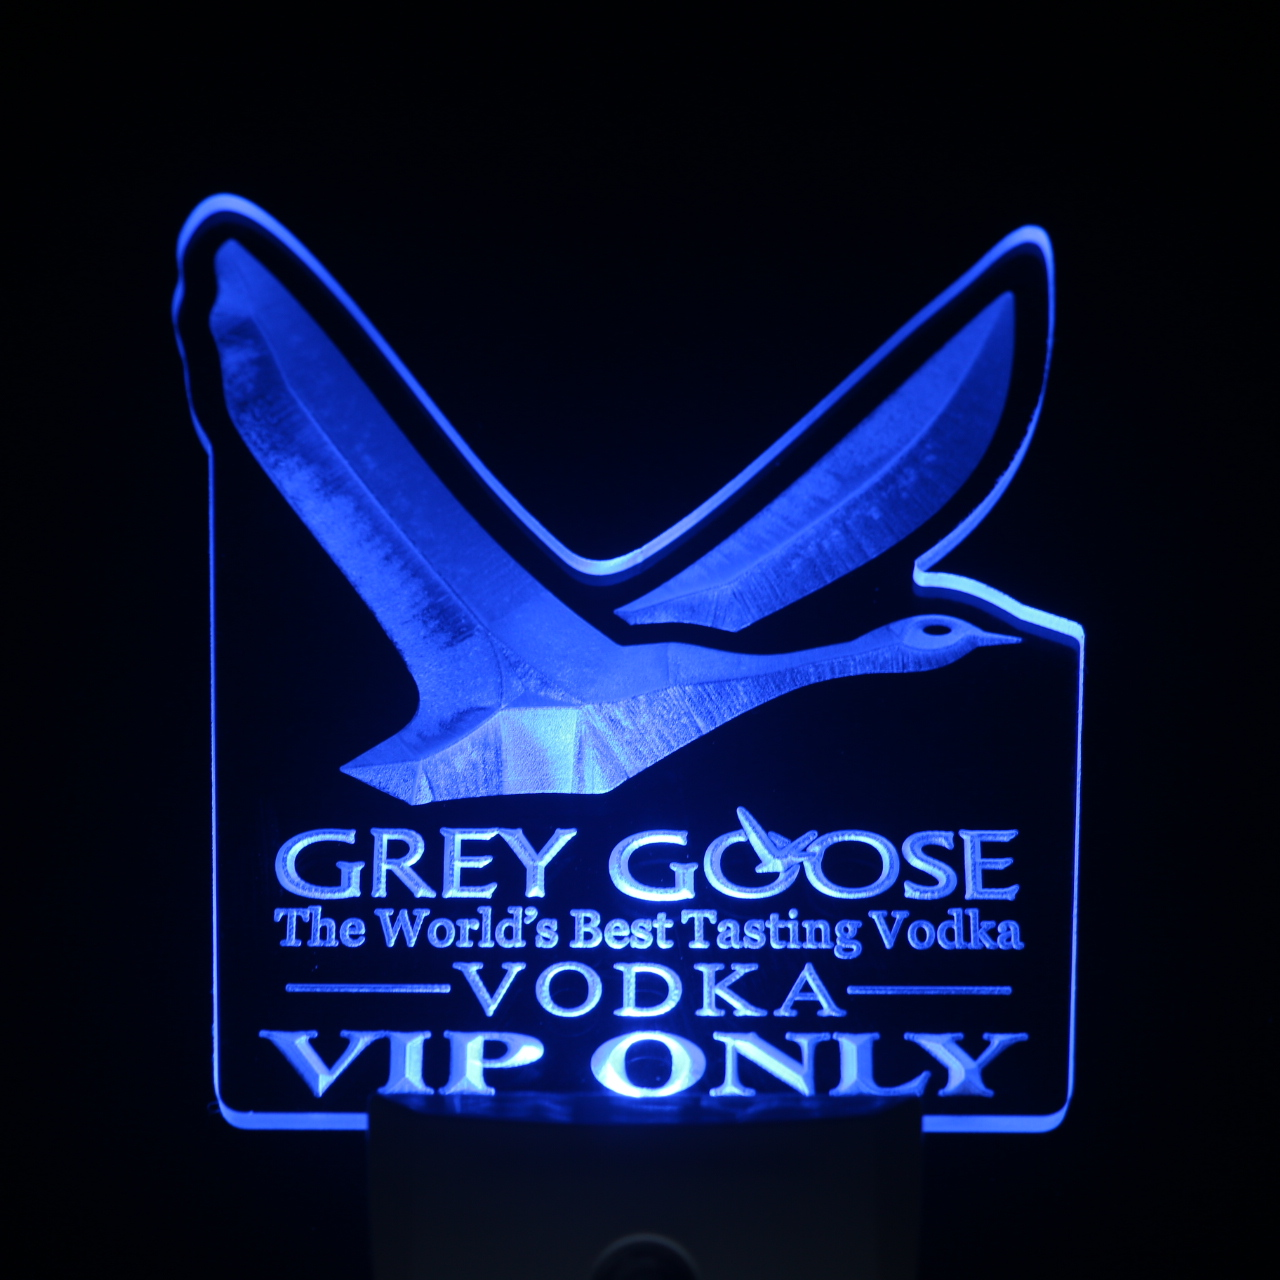 ws0209 Grey Goose Vodka VIP Only Day/ Night Sensor Led Night Light Sign